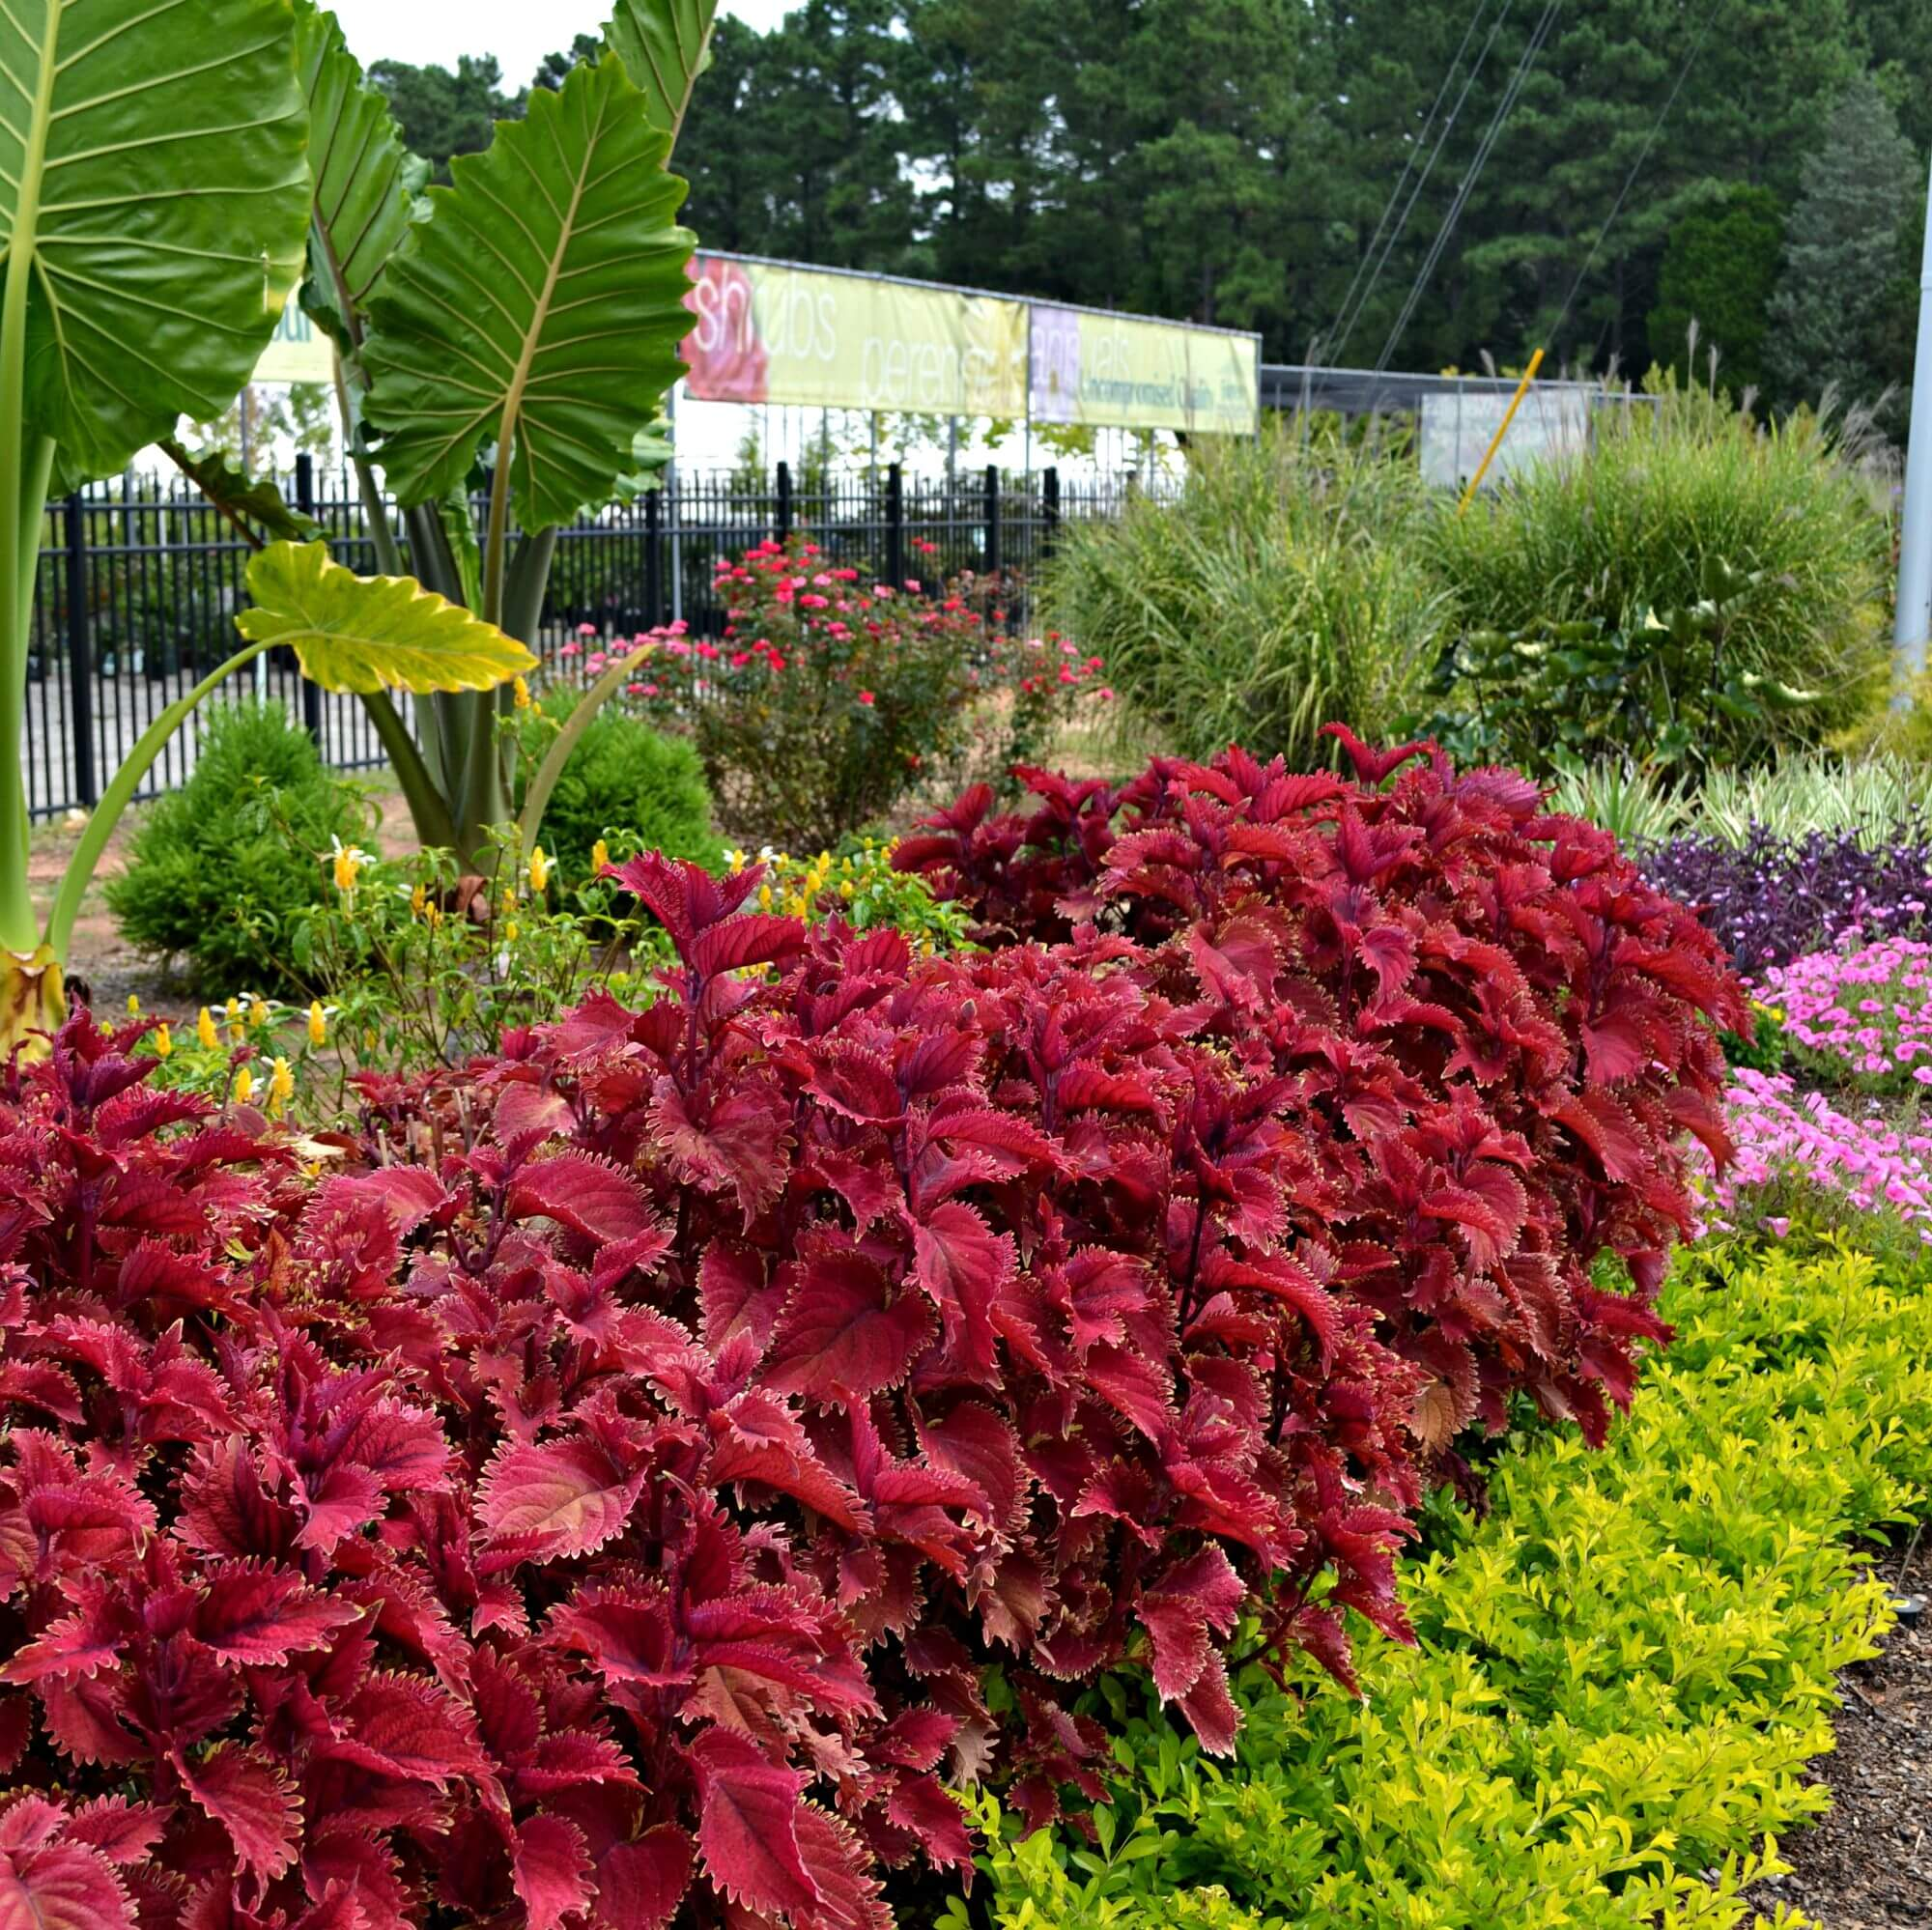 Late summer garden tips fairview garden center if you notice that some of your annual plants are not looking so stellar you may be able to give them a healthy hair cut pruning in early august and izmirmasajfo